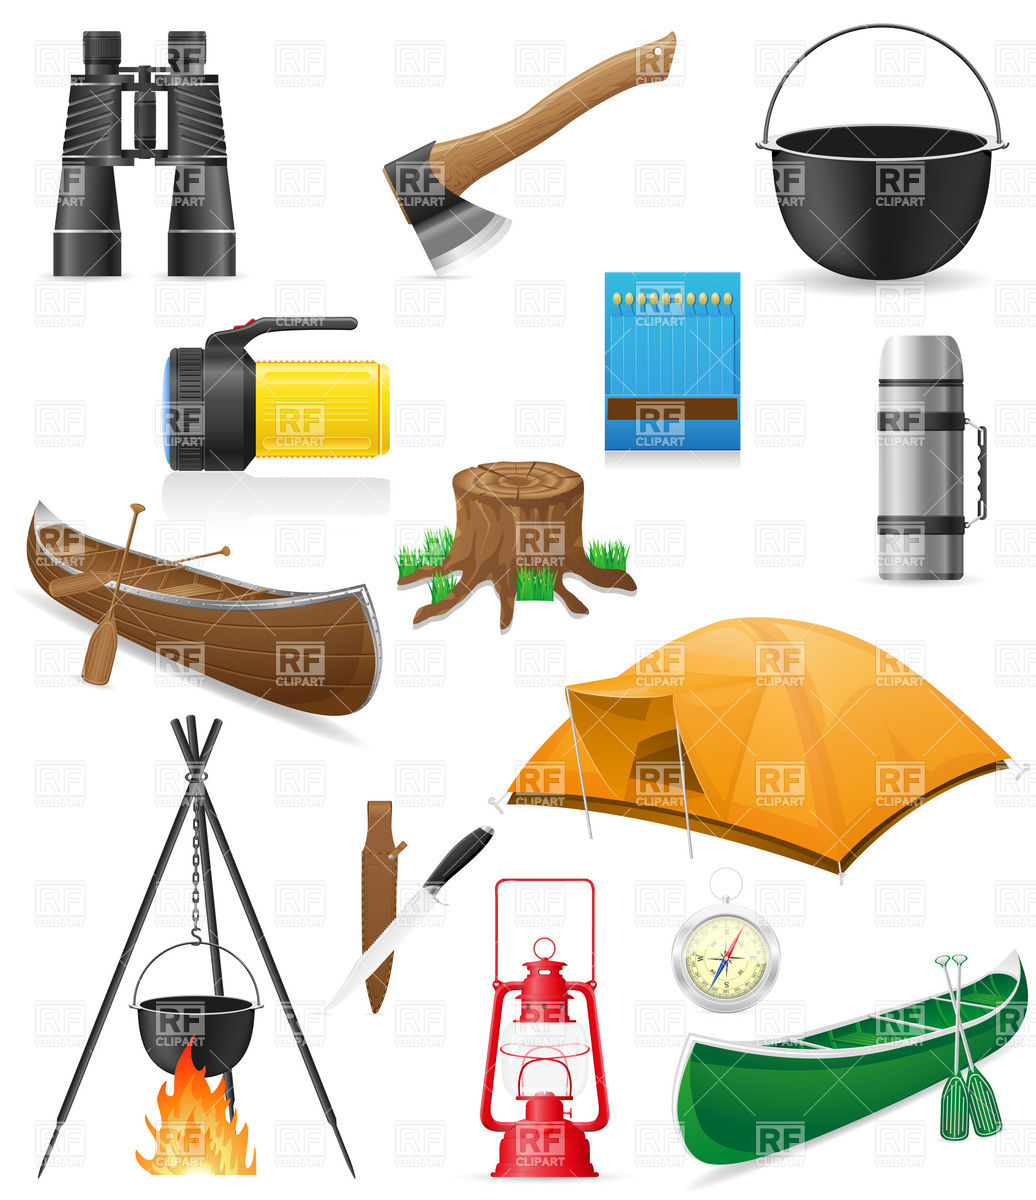 Camping equipment clipart #6